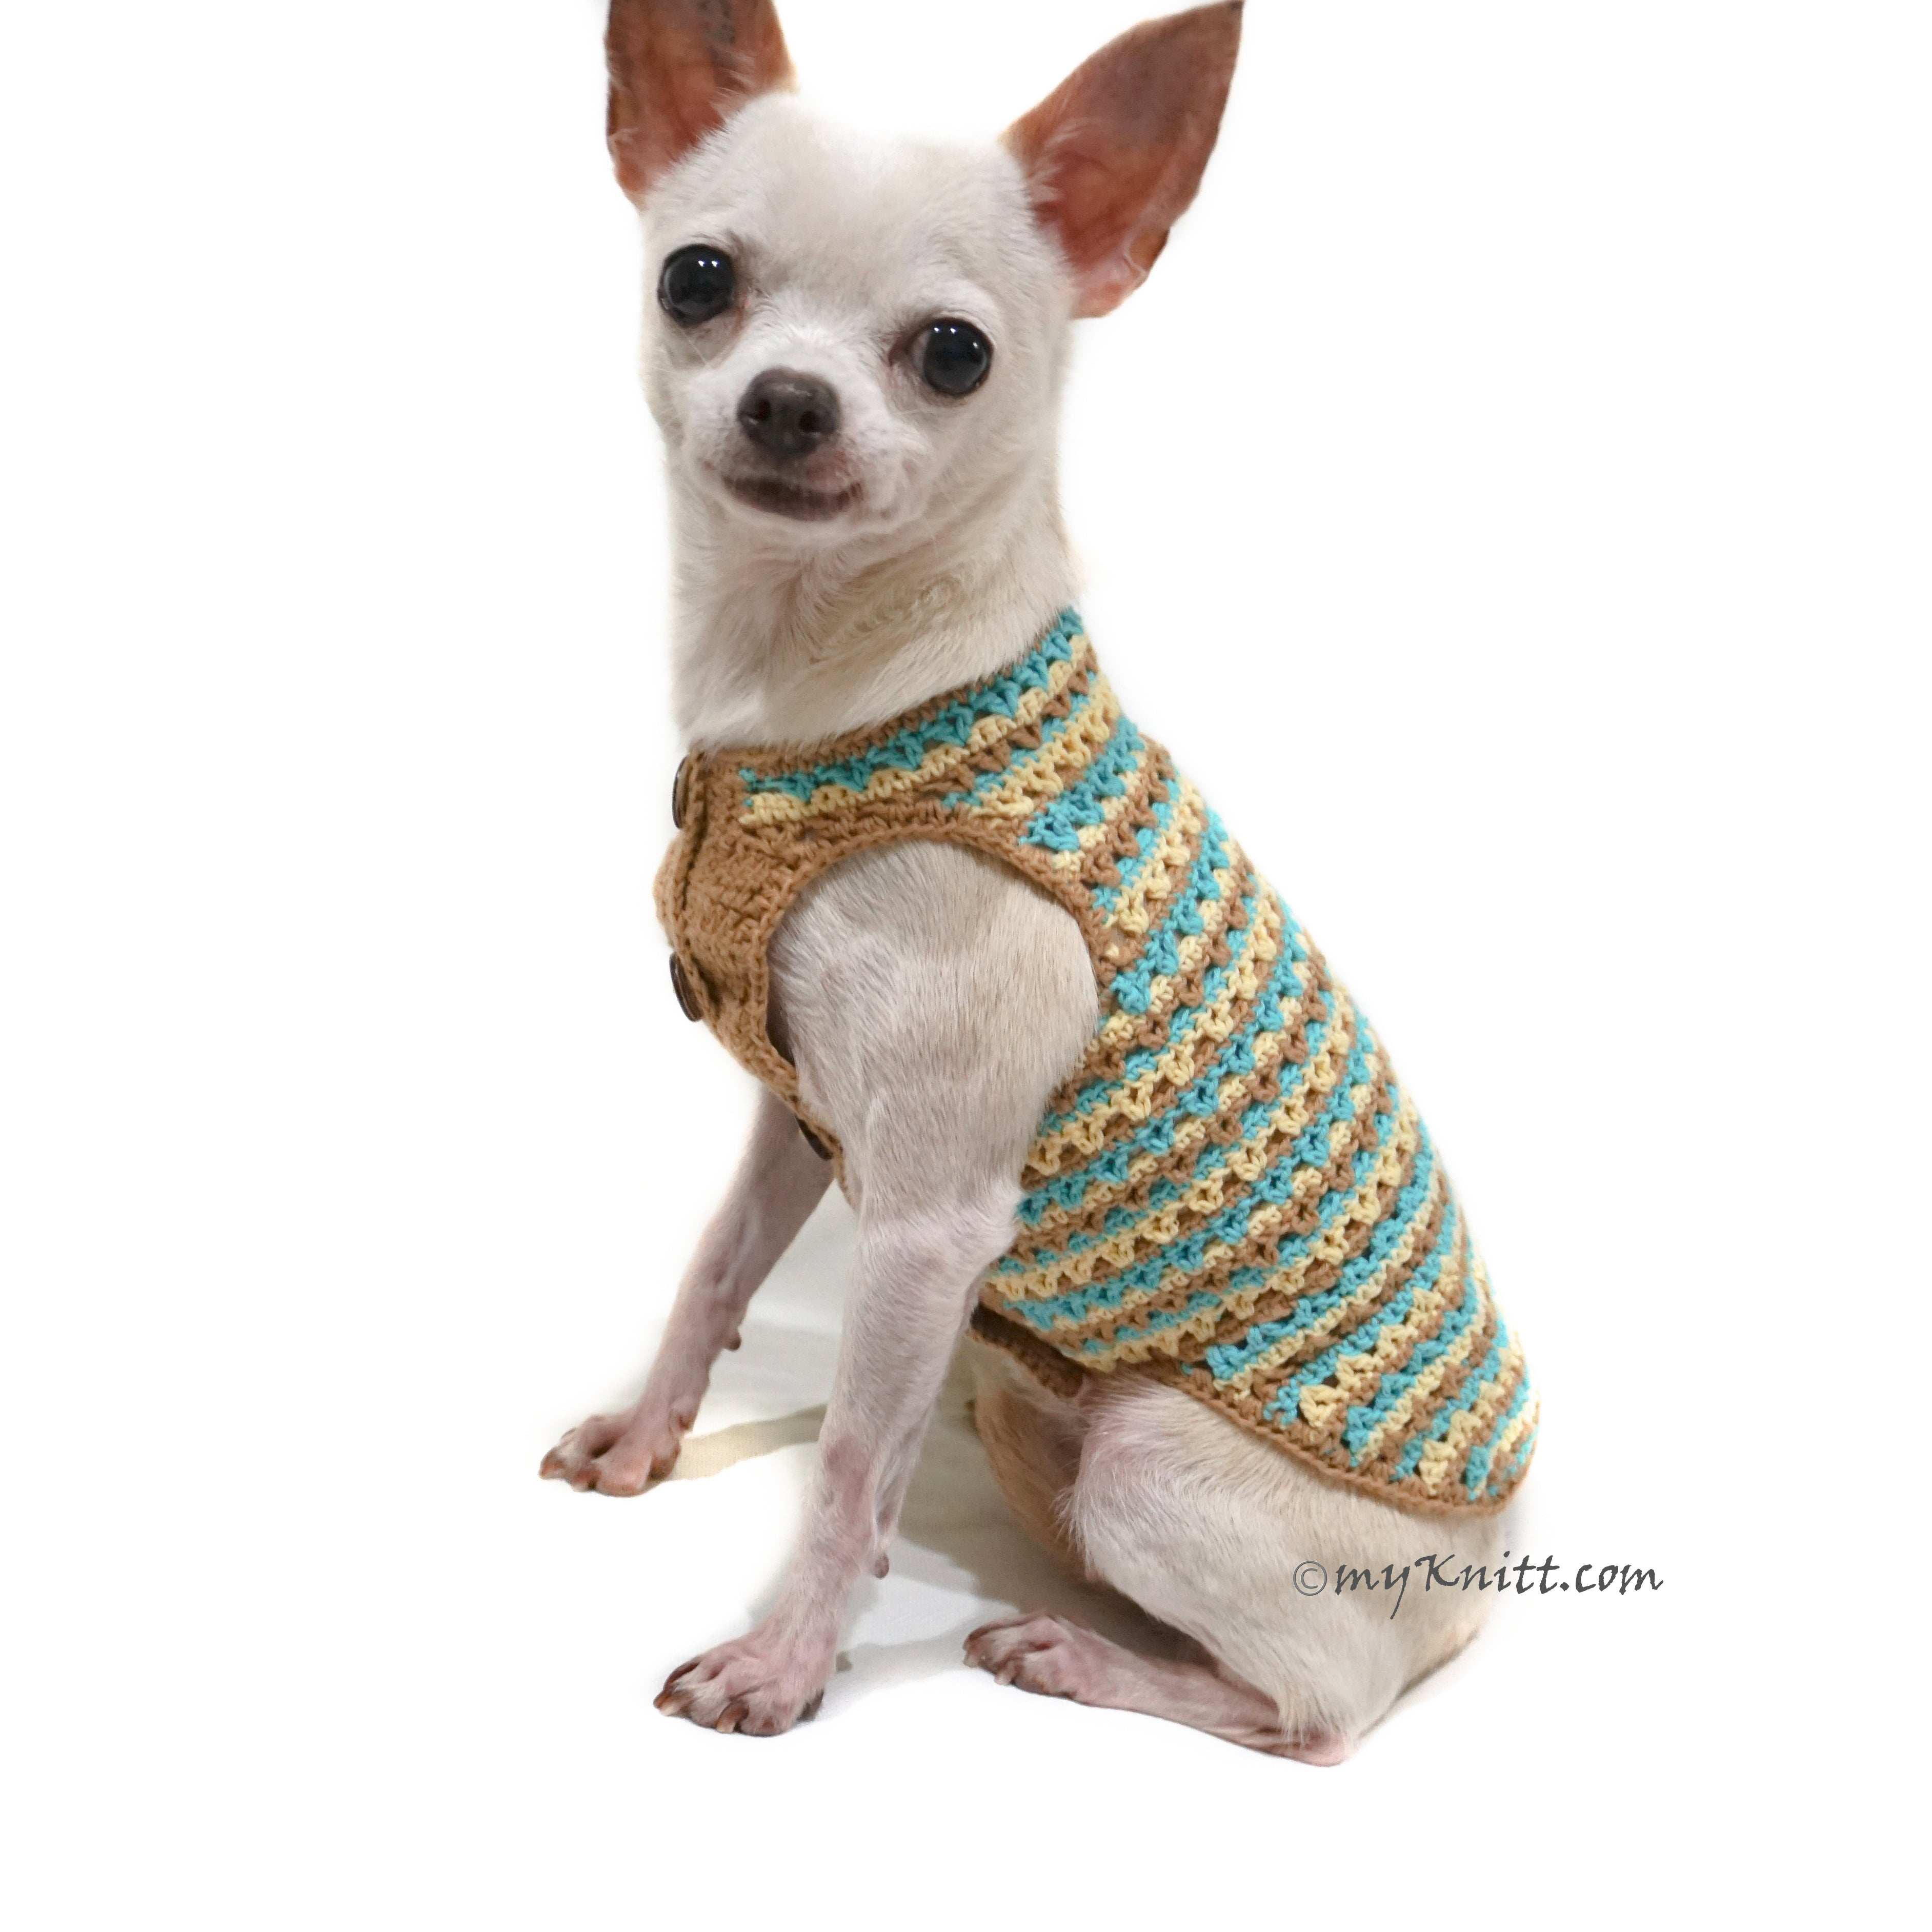 Teal Dog Shirt, Dog Clothes Boy, Chihuahua Clothes Summer DK774 by Myknitt